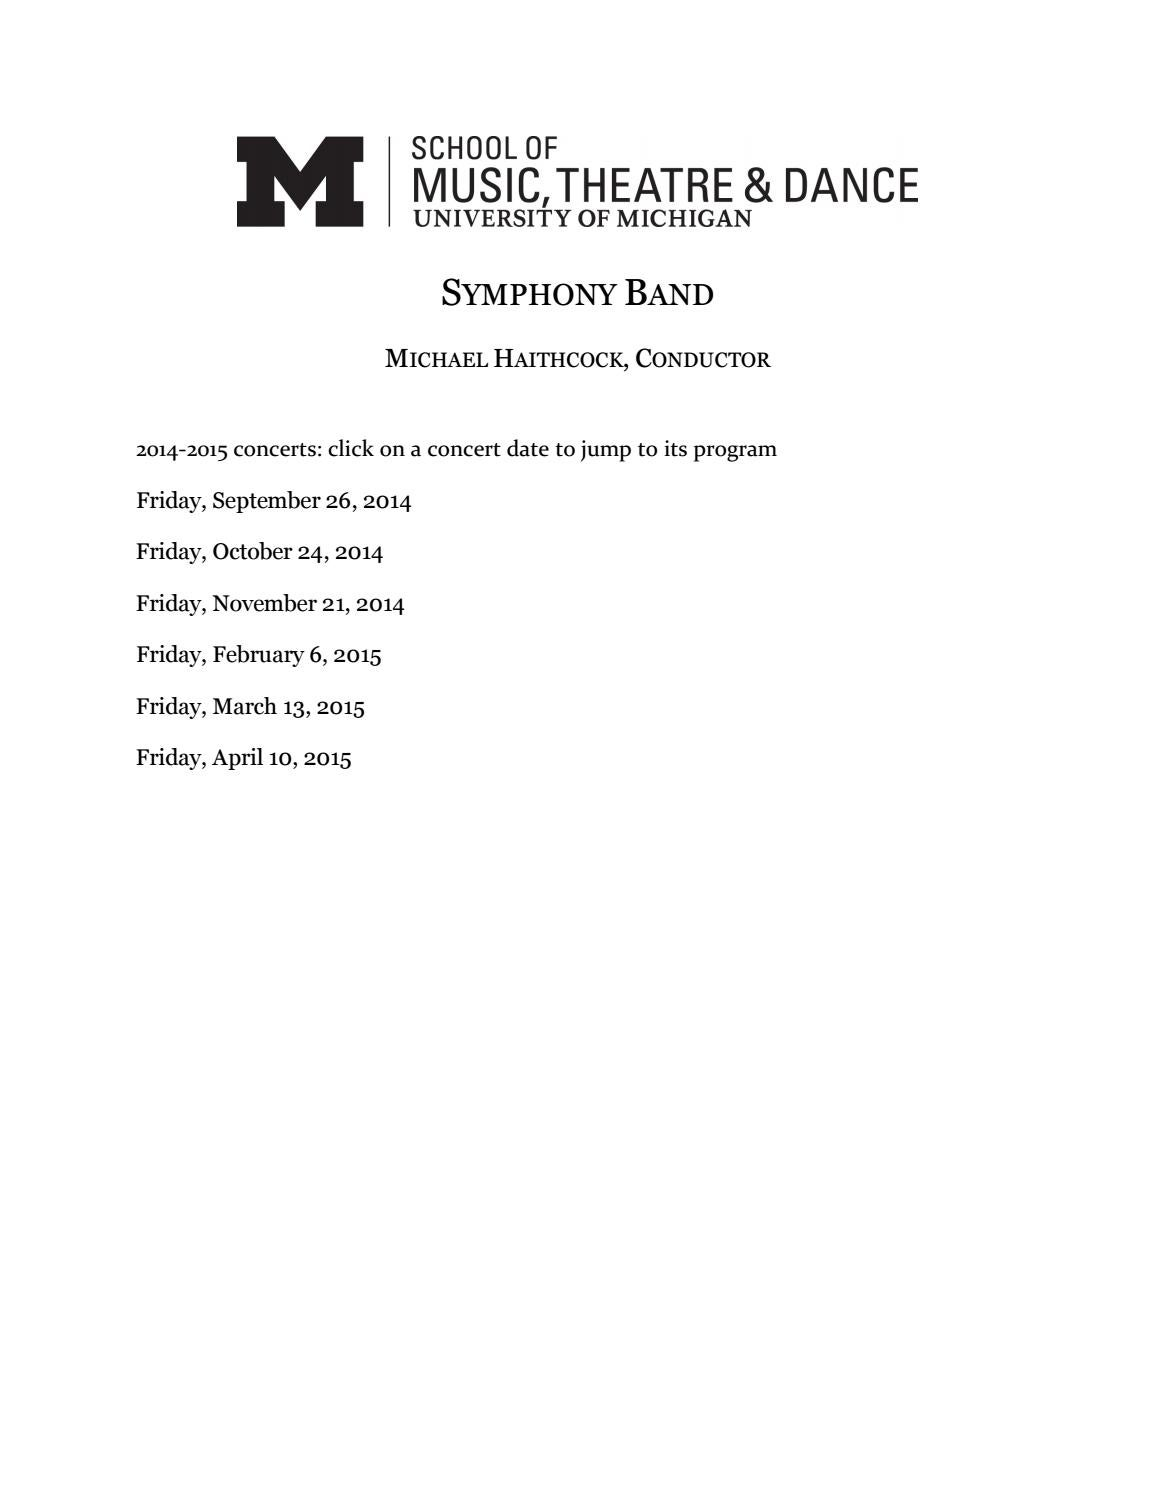 U-M Symphony Band, 14-15 Season by University of Michigan